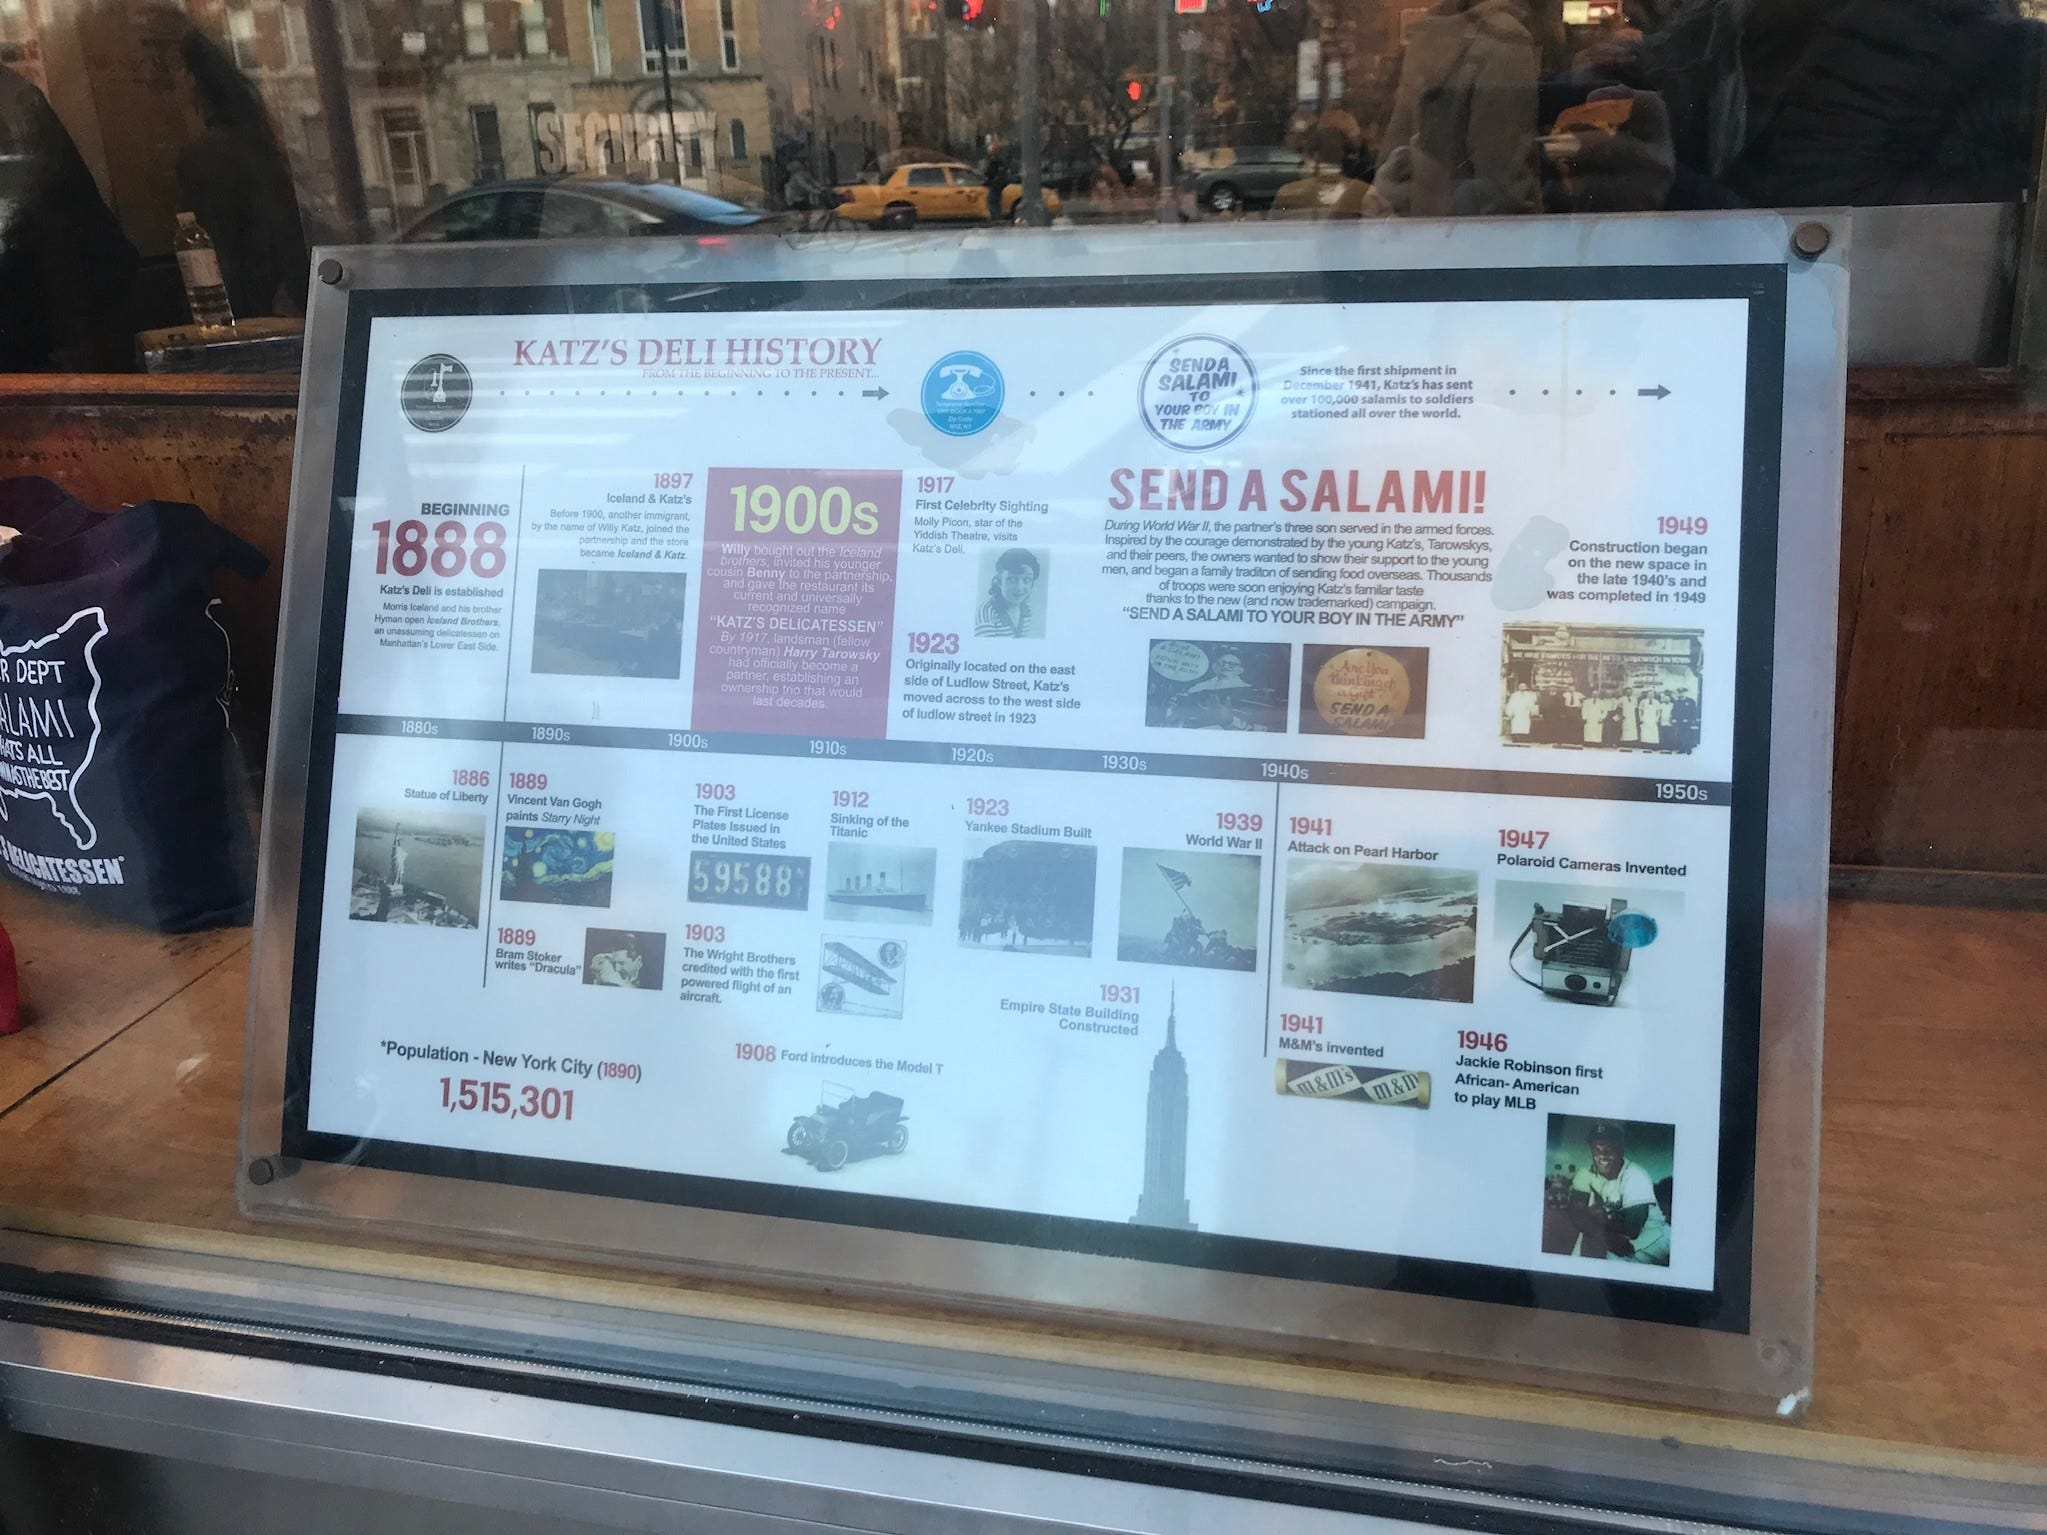 Katz's enjoys a long and rich history, which is captured in signage, memorabilia and displays like this timeline in the front window.